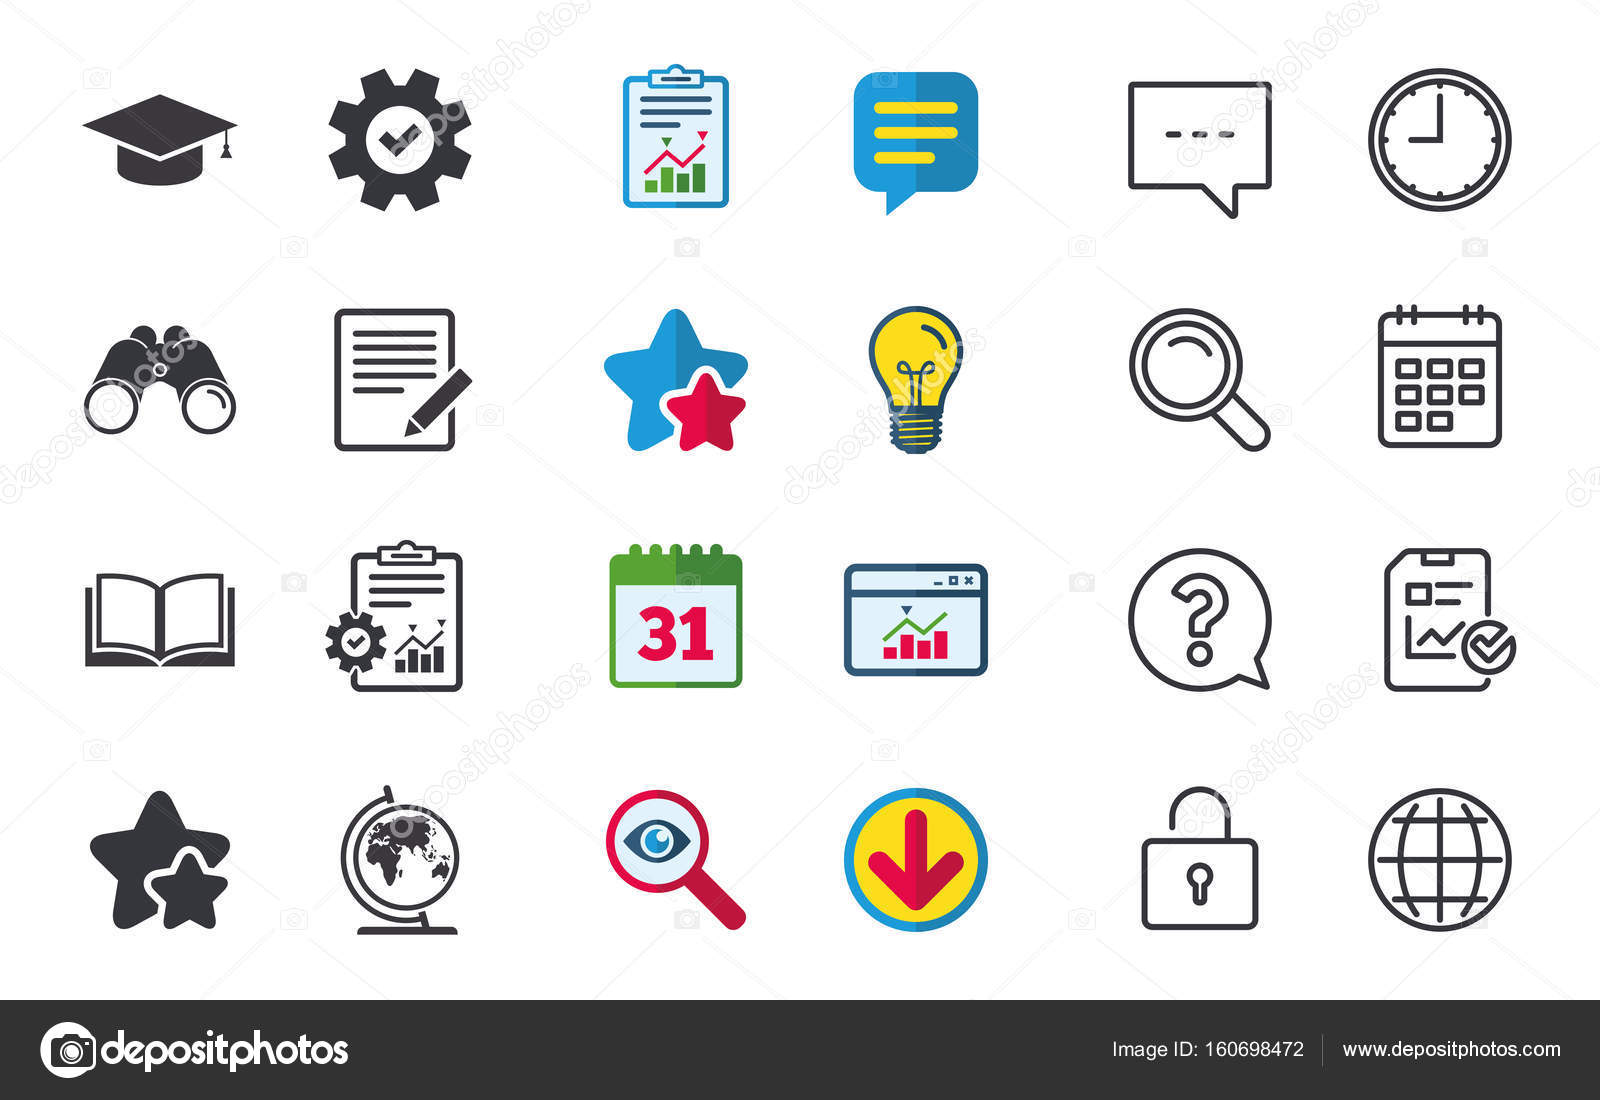 Chat Report And Calendar Signs Stock Vector Blankstock 160698472